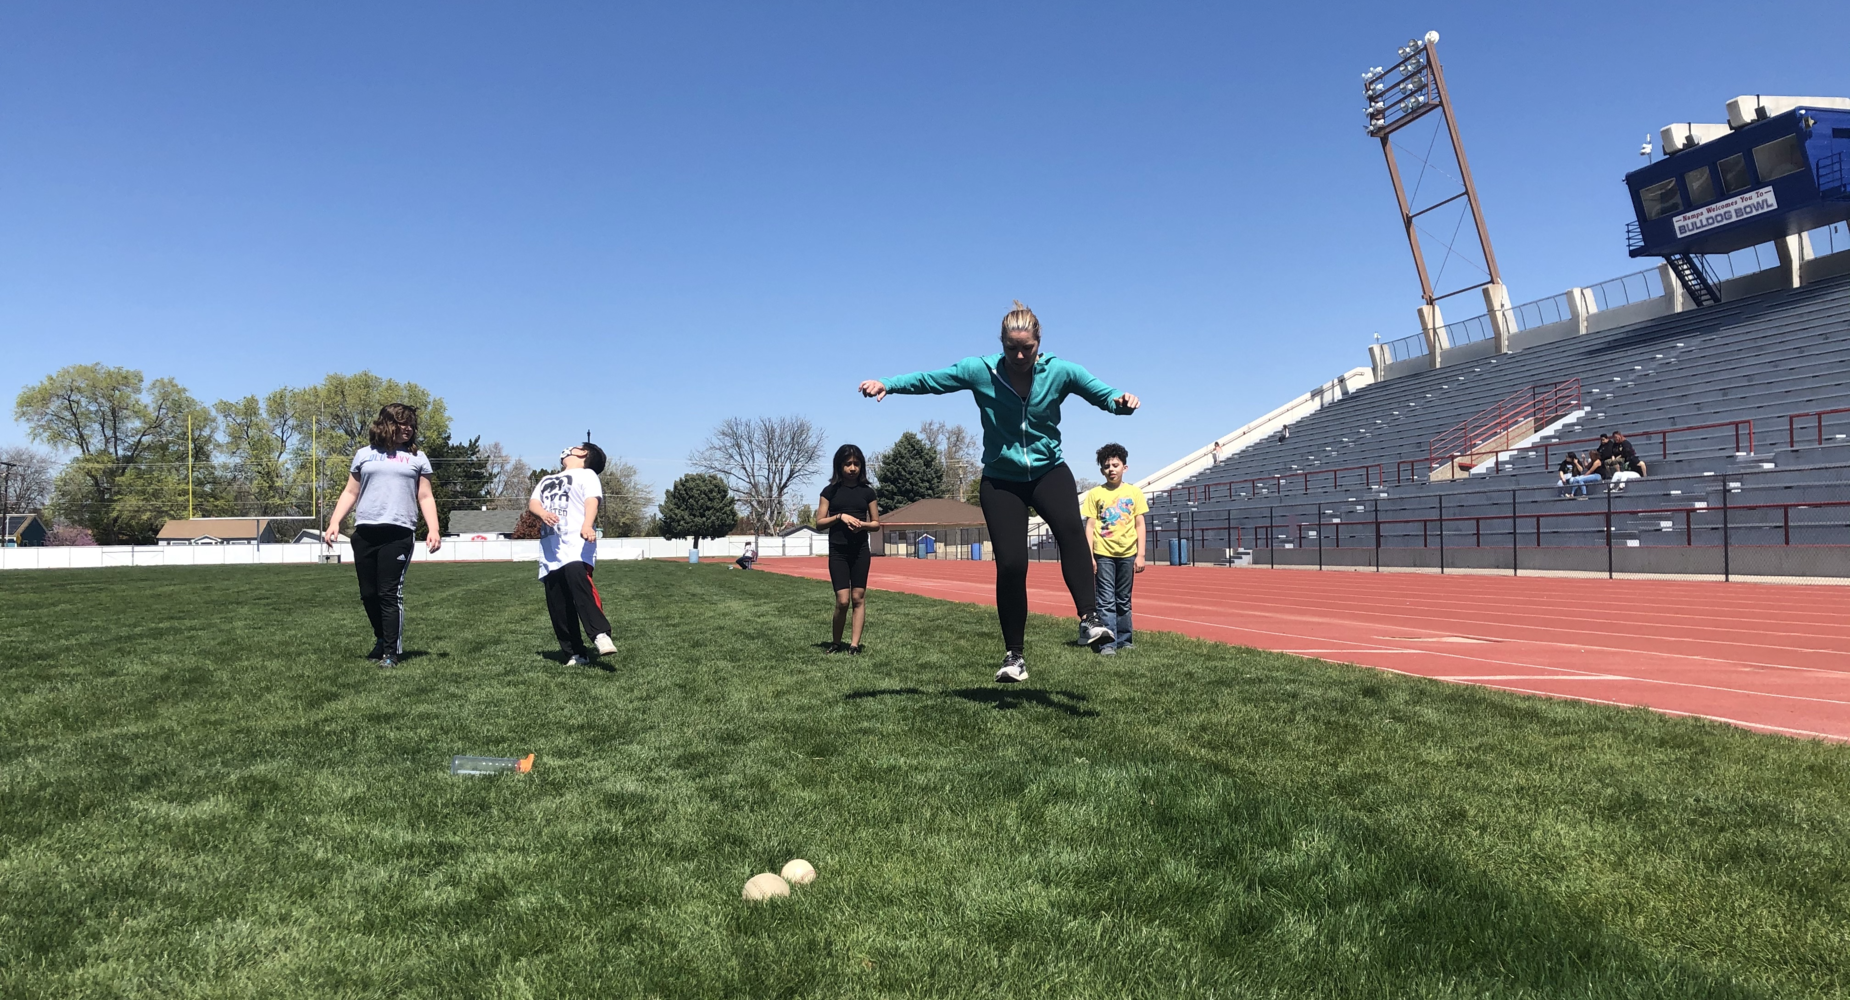 Coach Higgins practicing for the track meet with fifth-grade students.